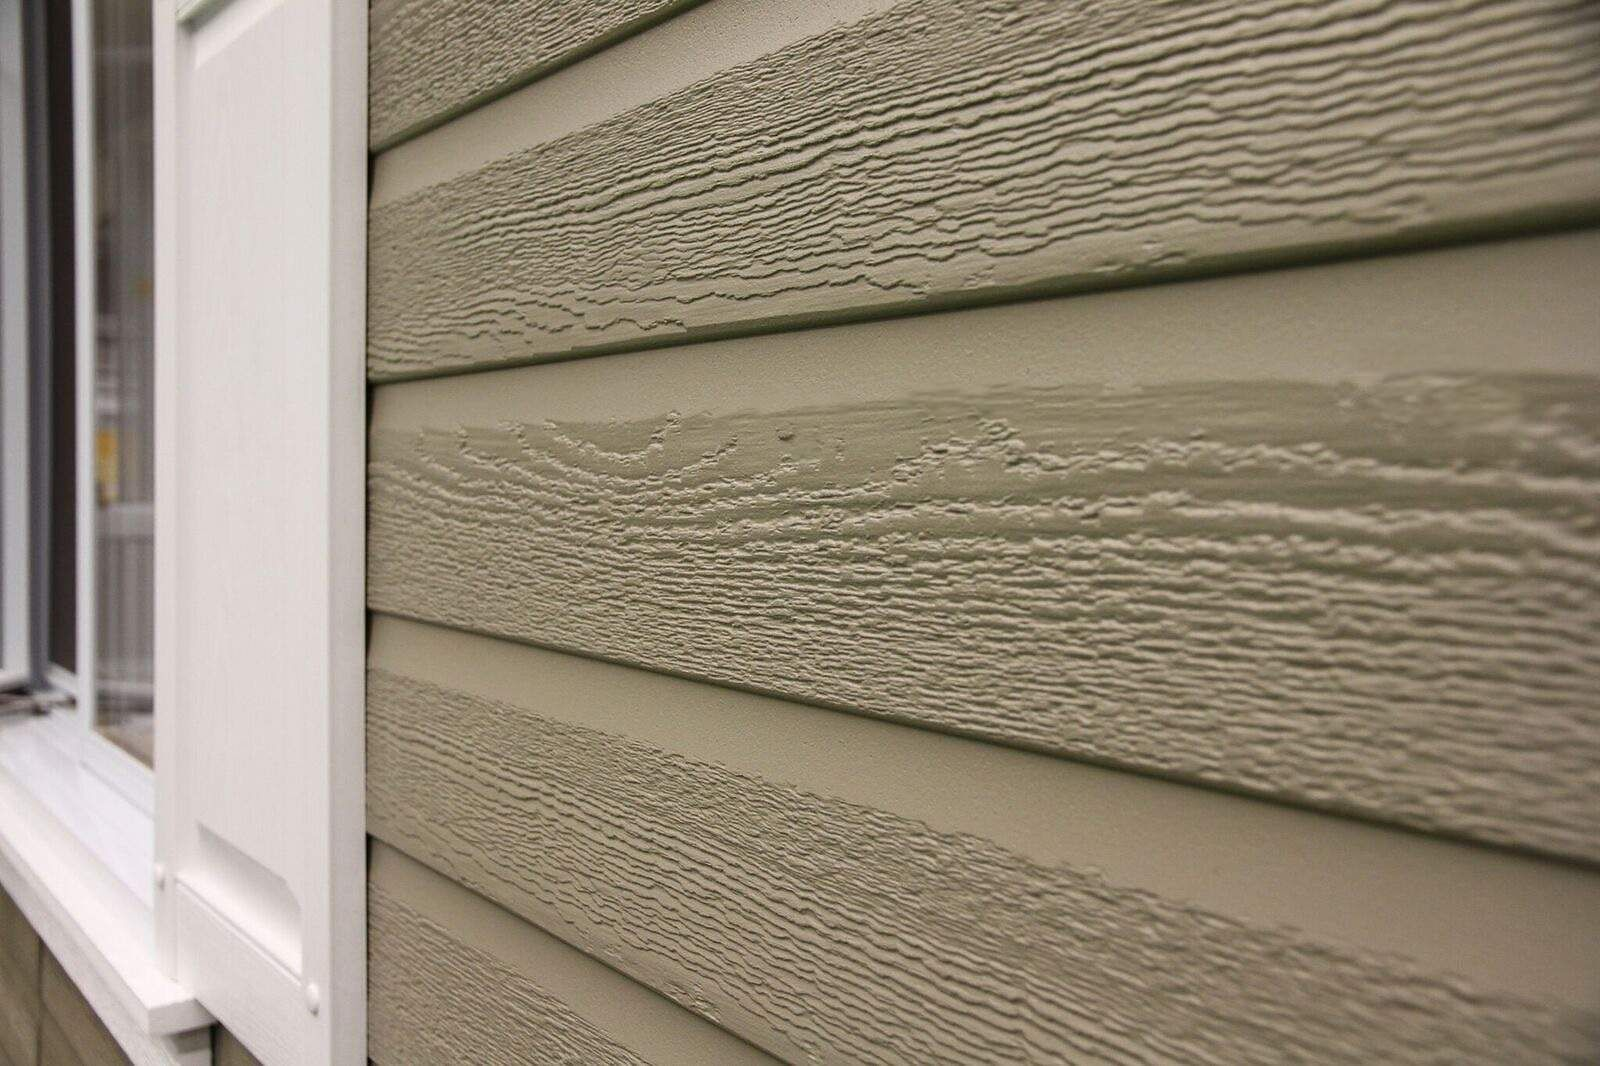 Kwp Engineered Wood Siding Naturetech Prestige Double 5 Dutchlap Khaki Wood Accent Feature Cladding Engineered Wood Siding Wood Siding Wood Siding Colors